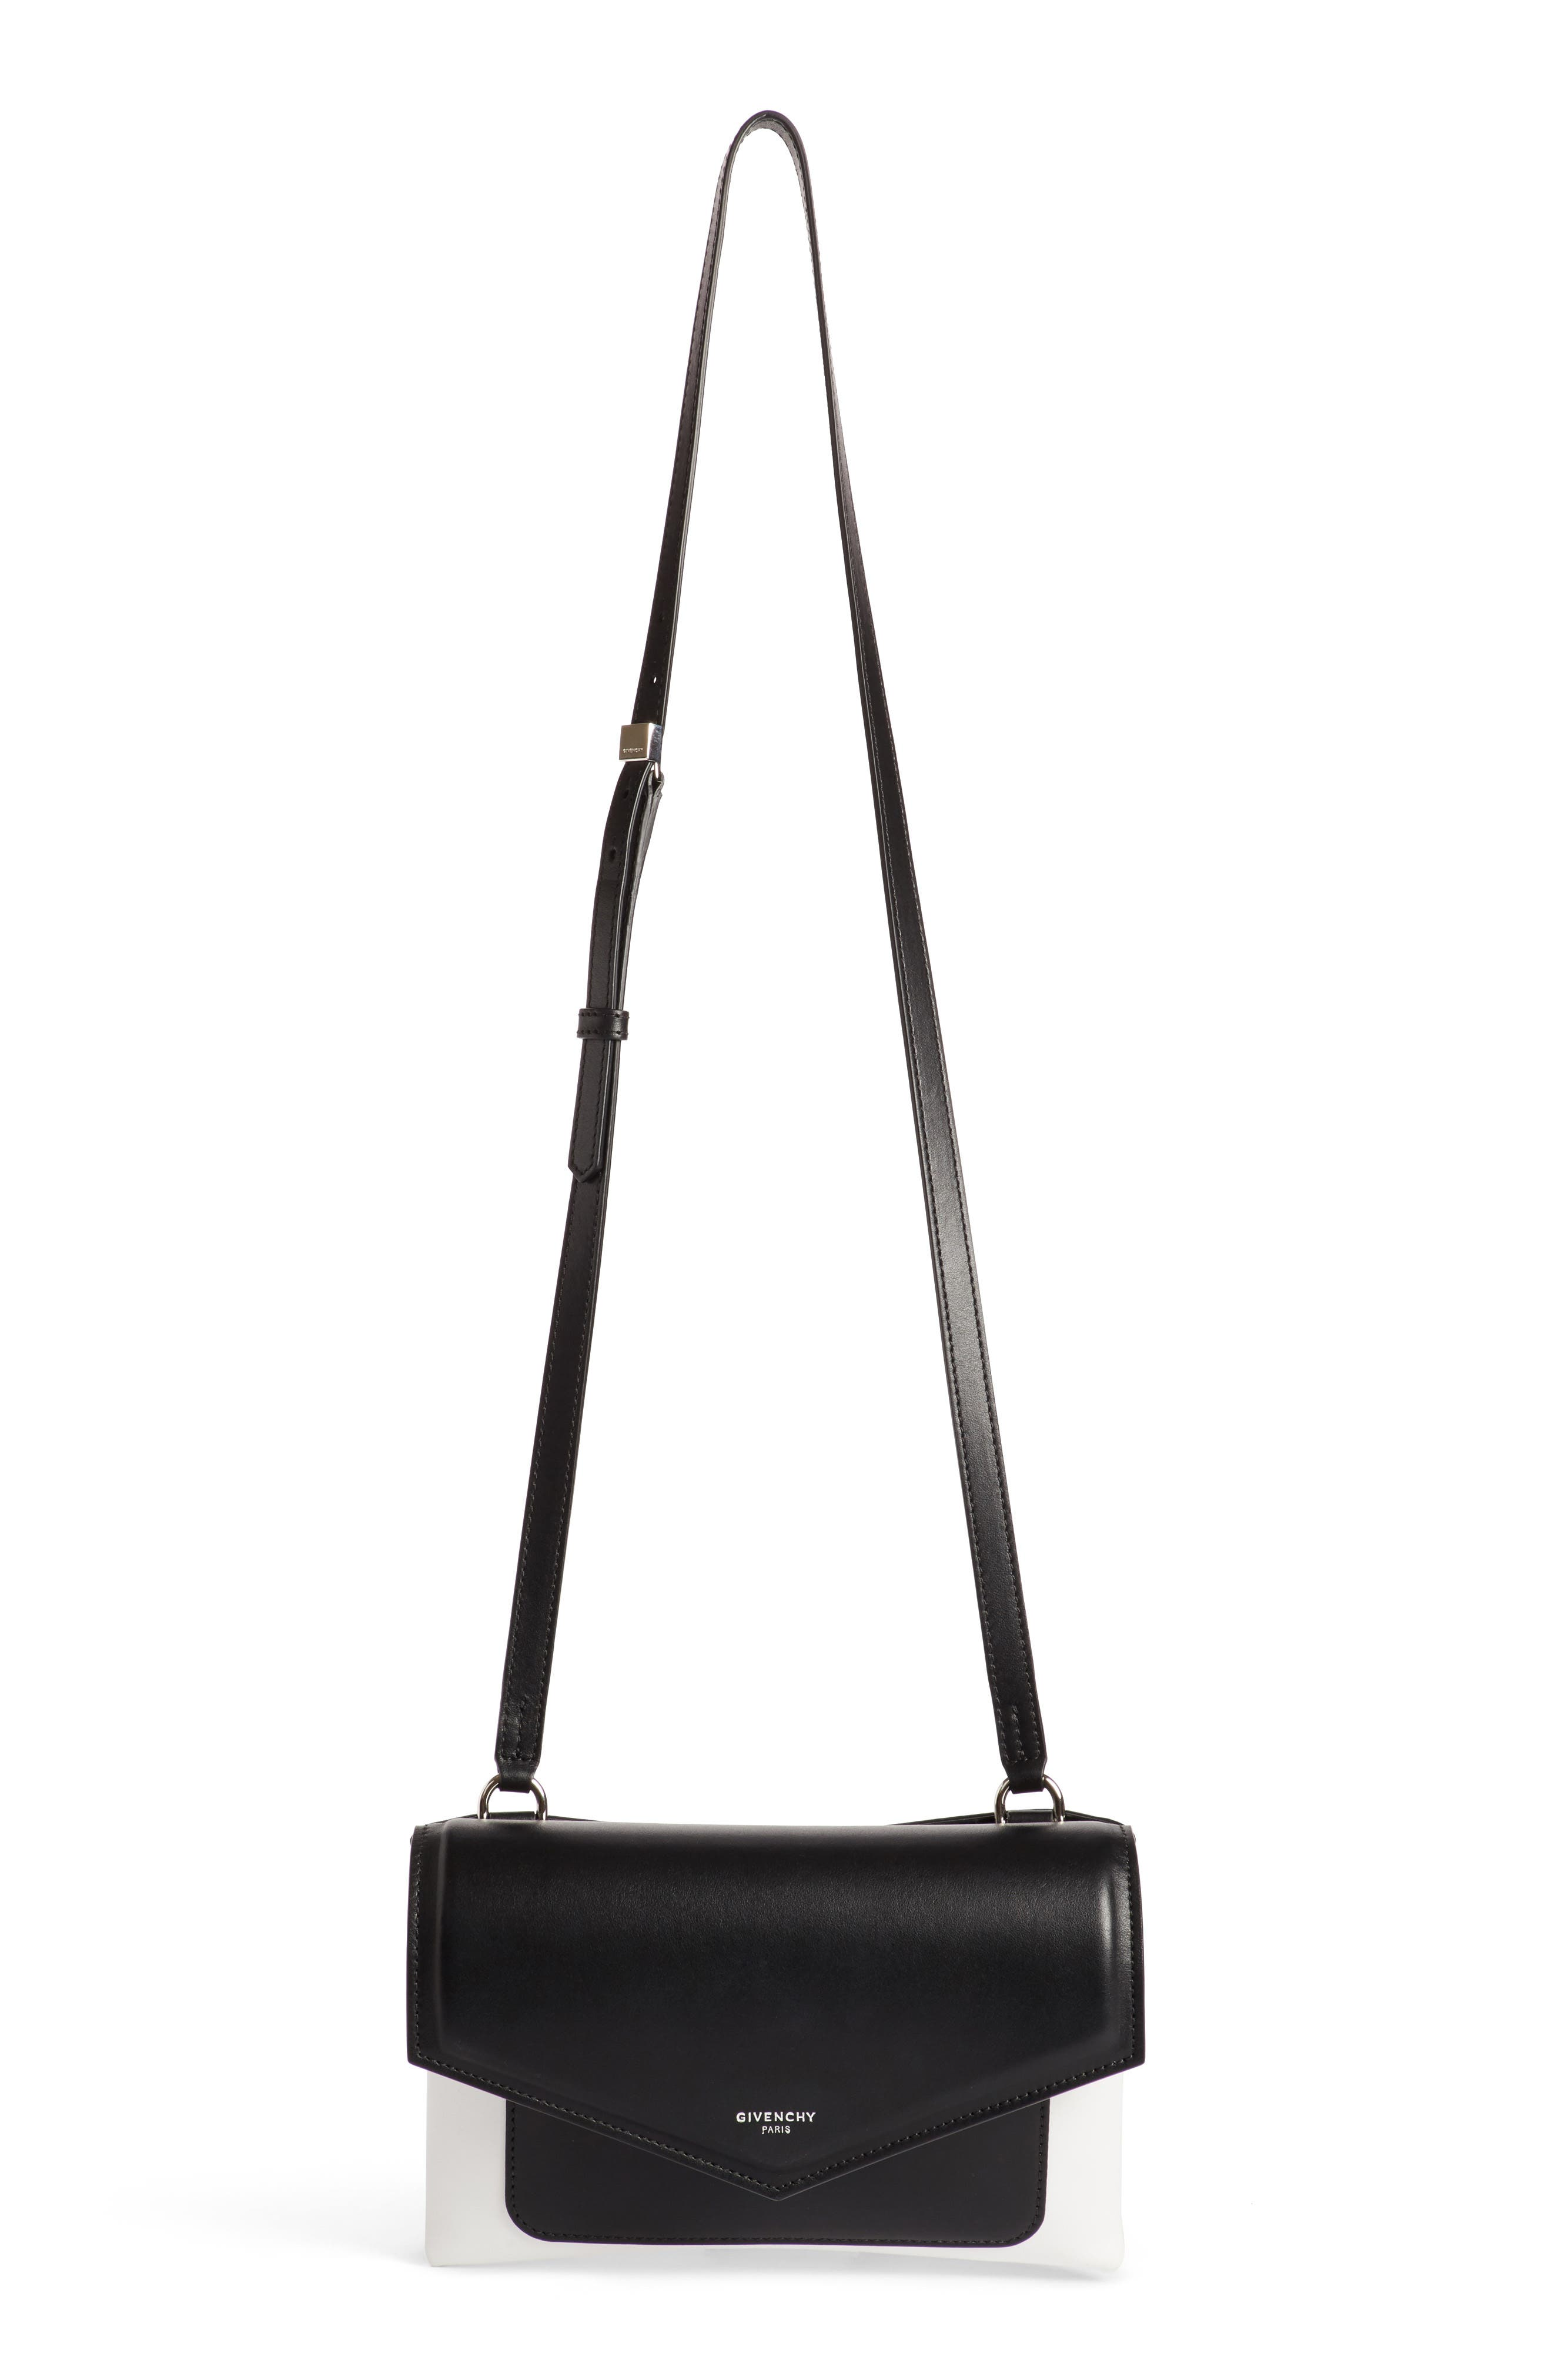 Alternate Image 1 Selected - Givenchy Duetto Bicolor Leather Flap Crossbody Bag